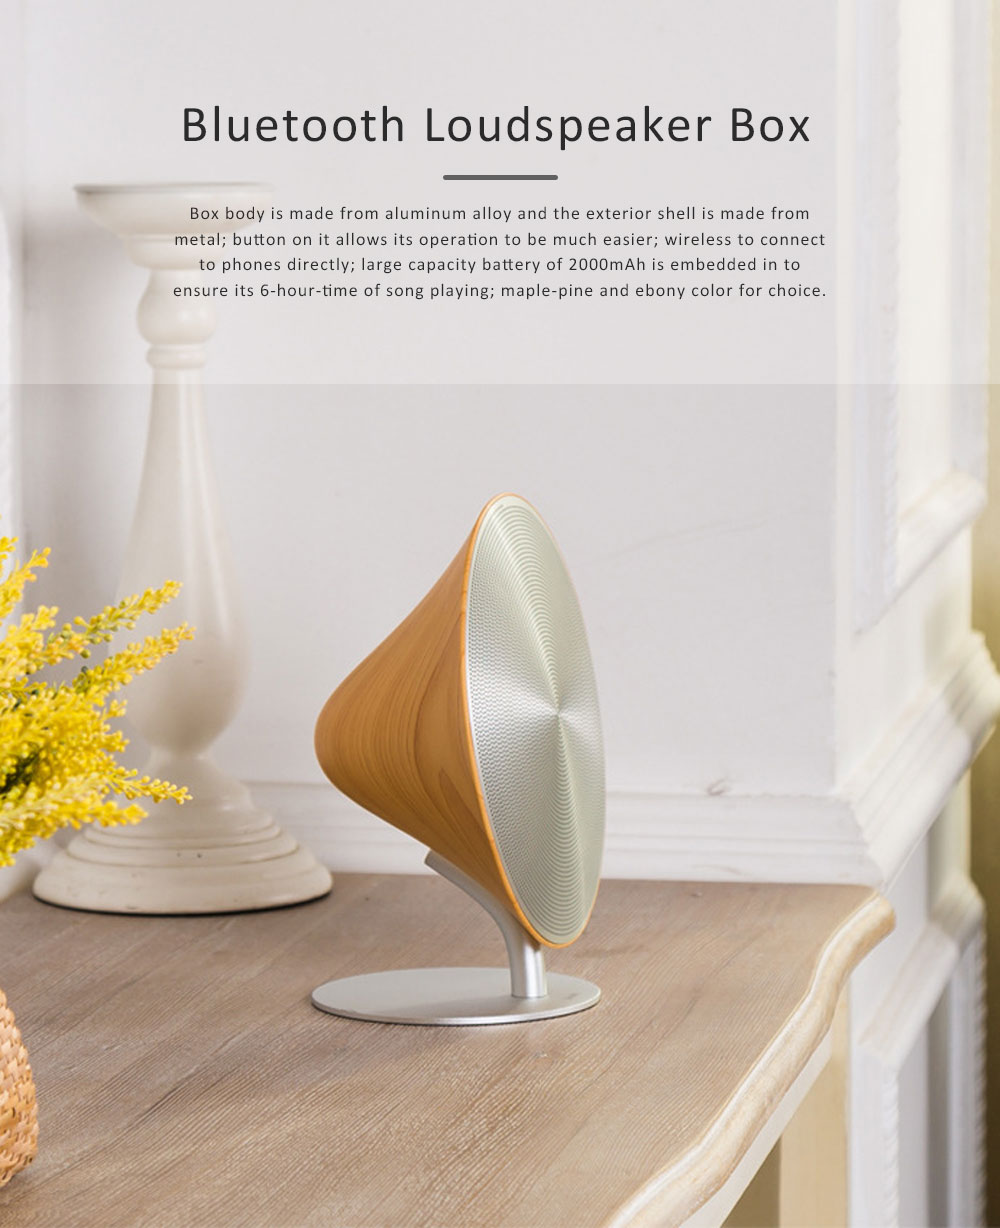 Loudspeaker Box Bluetooth for Desktop Use, Portable Loudspeaker Box Creative Subwoofer Aluminum Subwoofer Package with Amp Desktop Loudspeaker Box 0